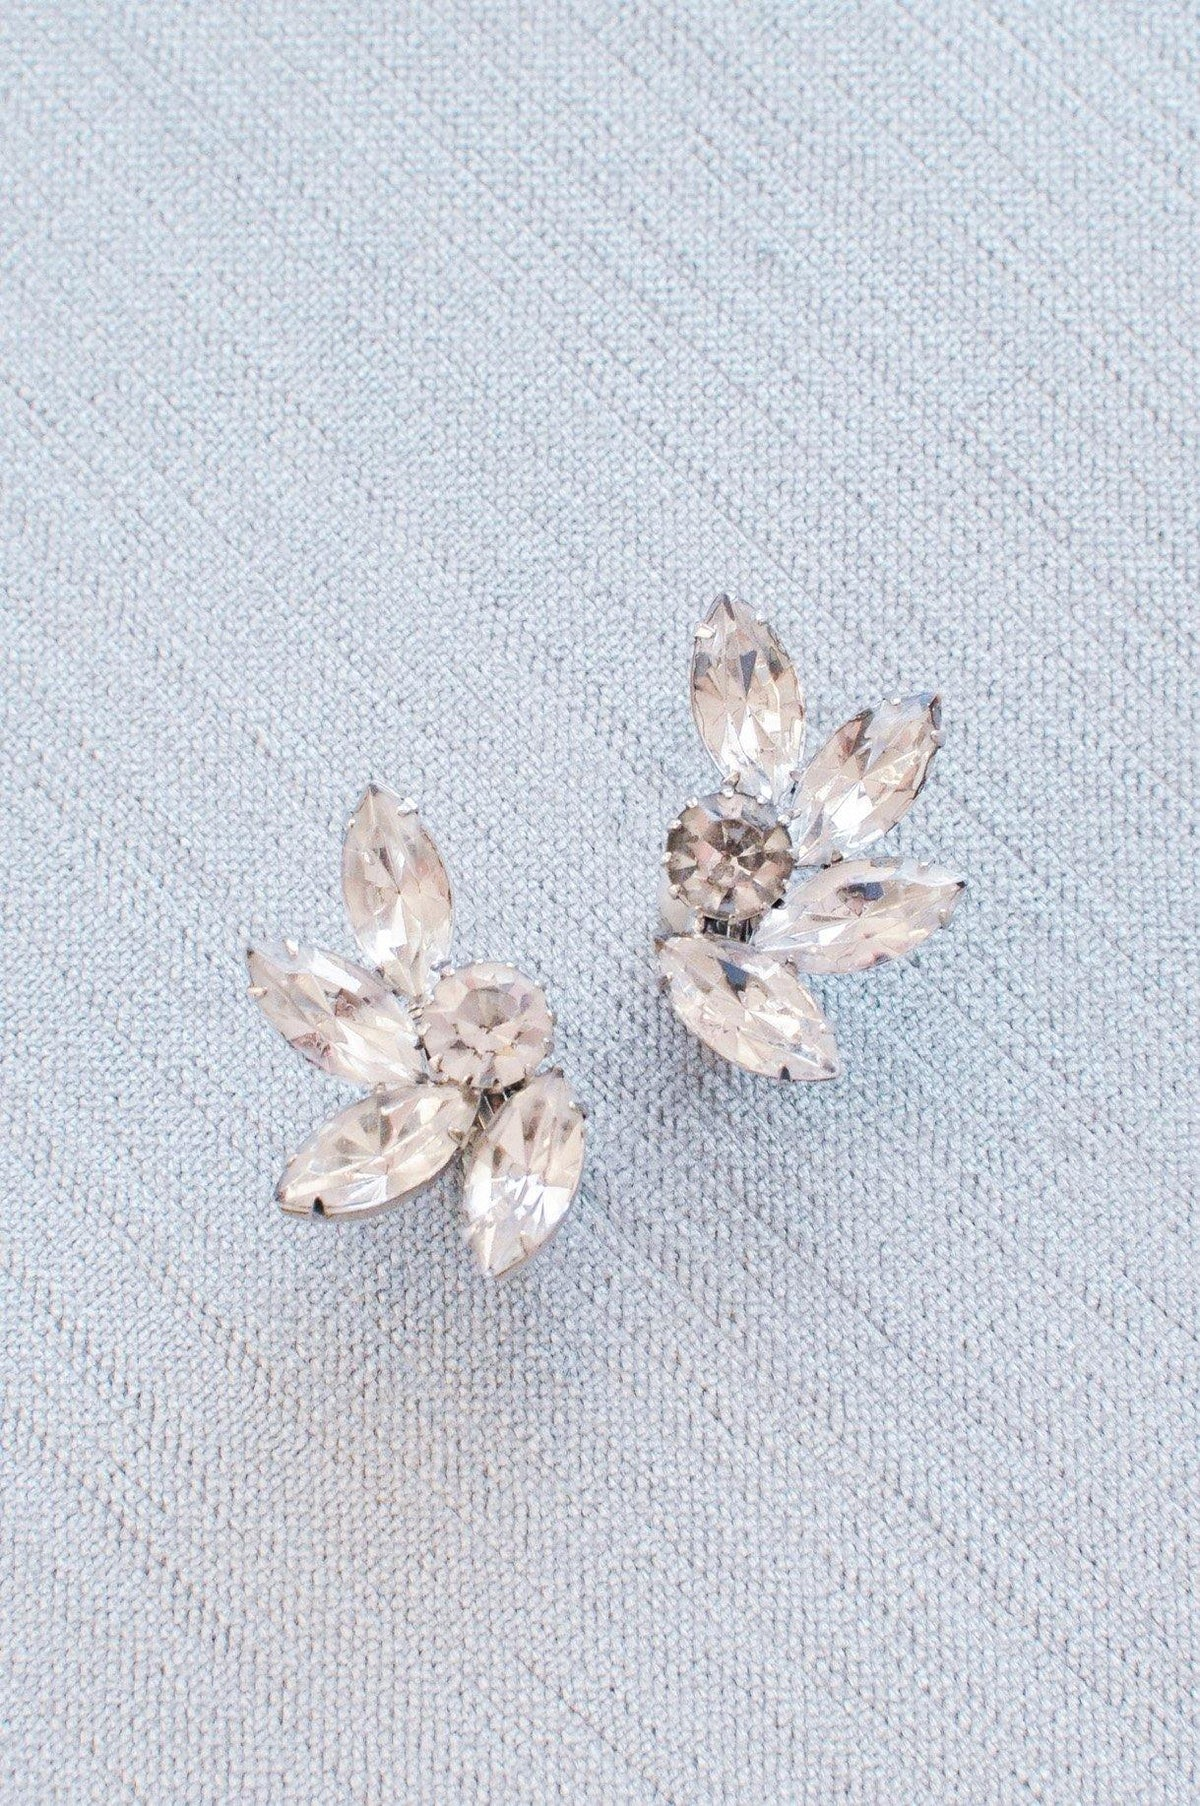 Vintage pretty rhinestone crawler earrings from Sweet & Spark Wedding Collection.